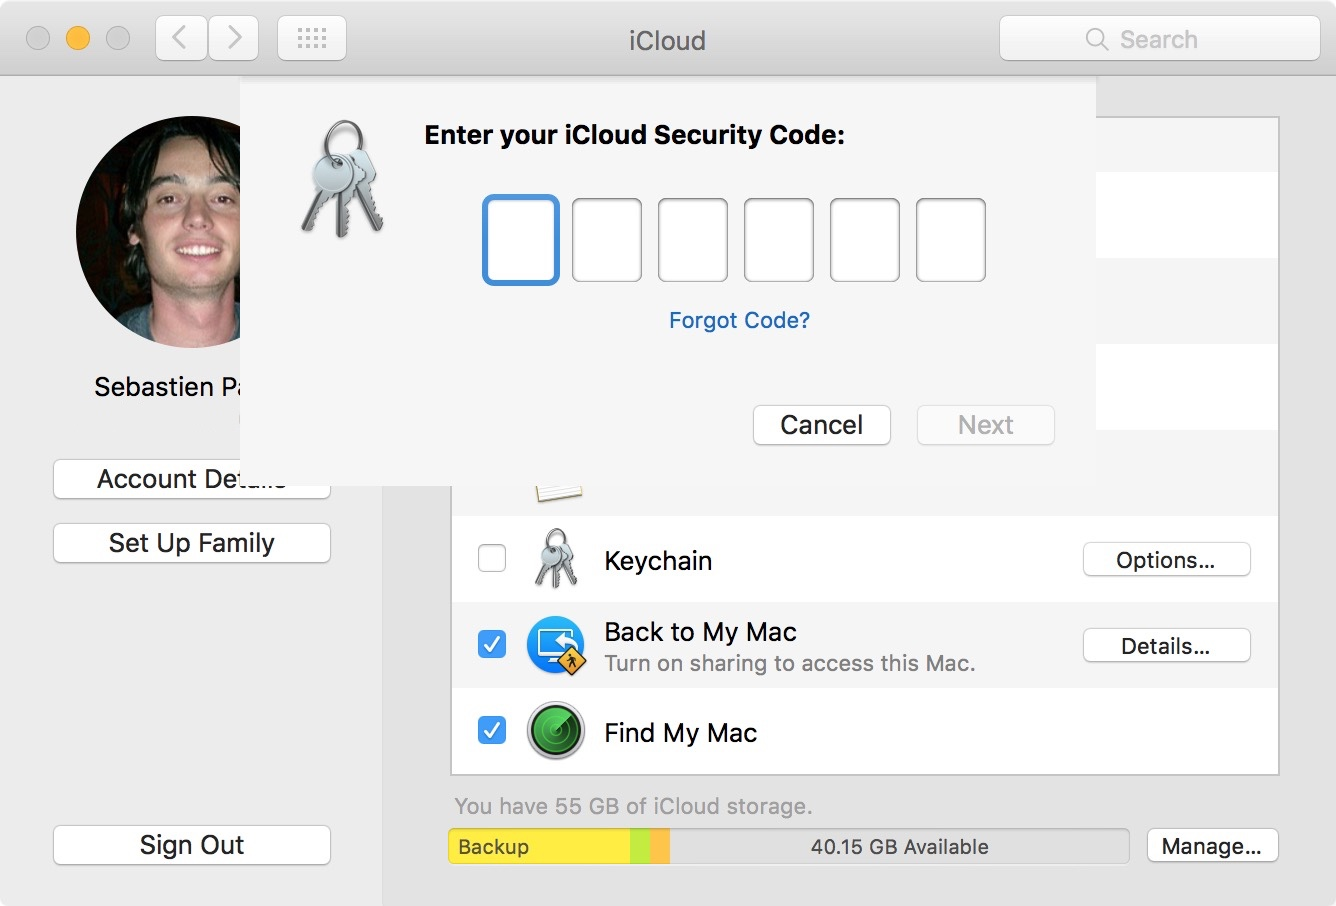 how to create a new icloud security code